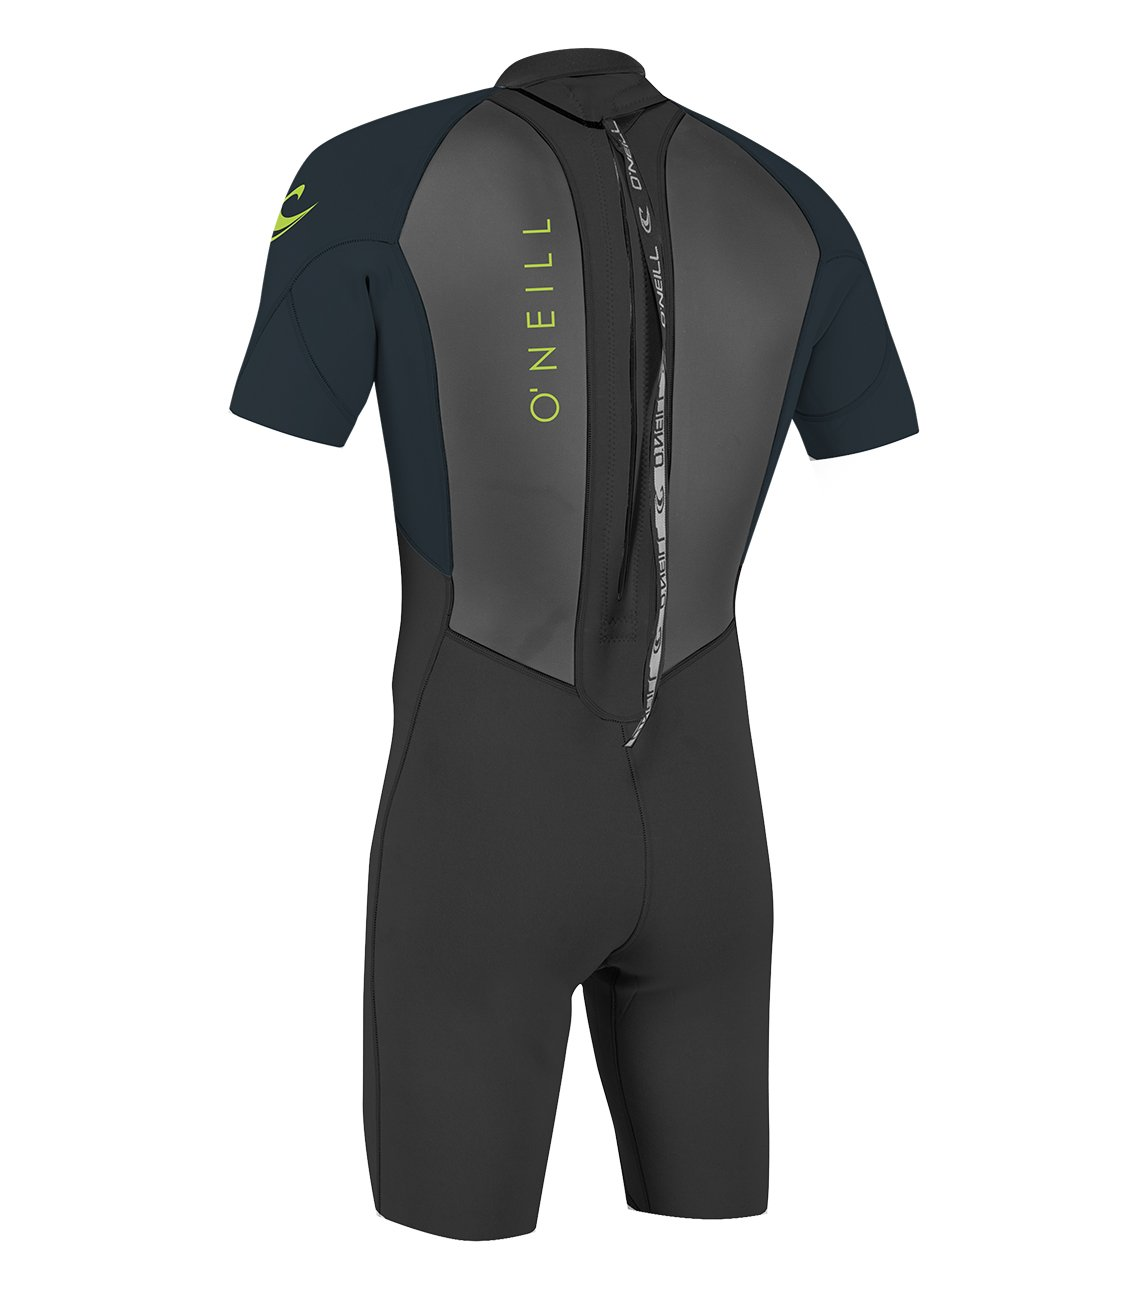 O'Neill Youth Reactor-2 2mm Back Zip Short Sleeve Spring Wetsuit, Black/Slate, 6 by O'Neill Wetsuits (Image #2)